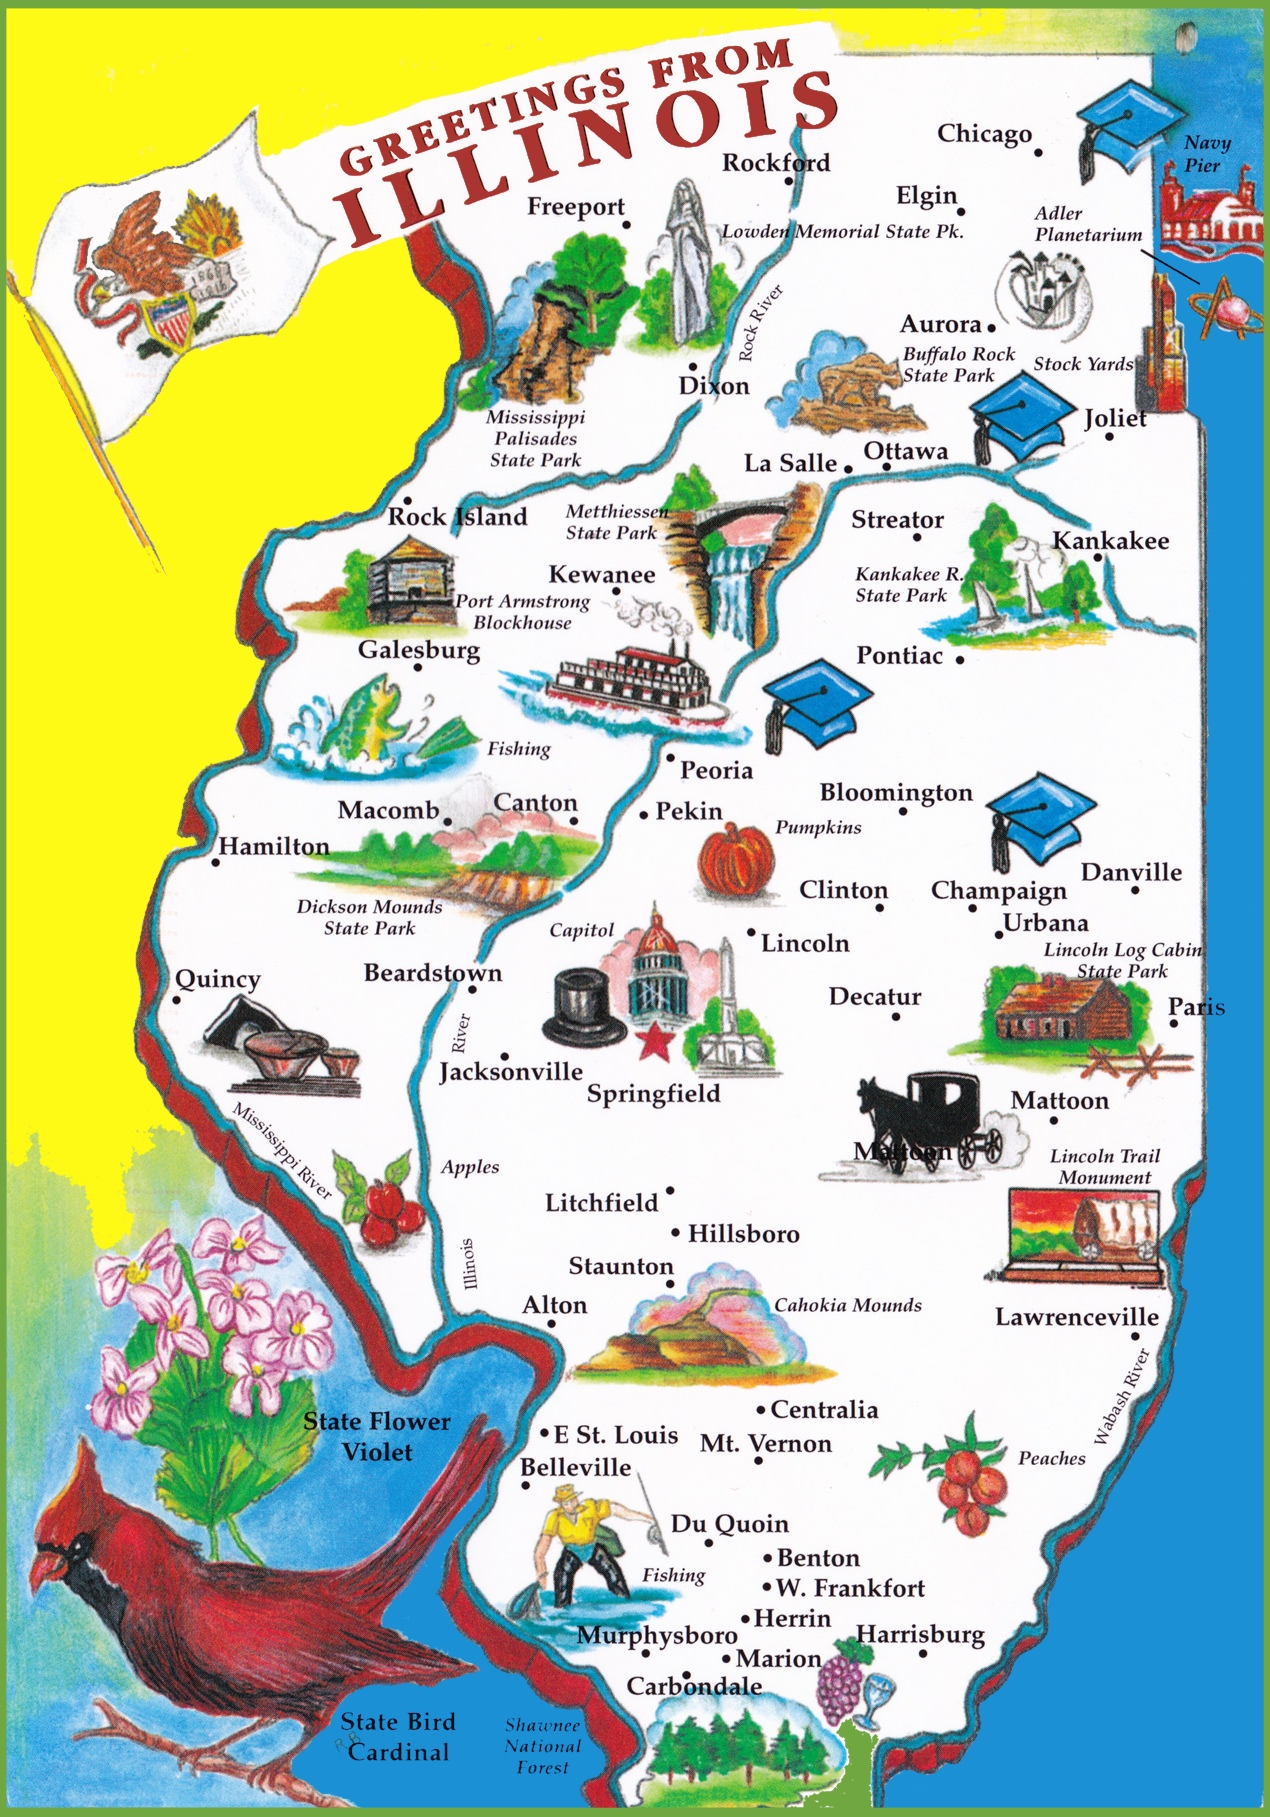 Illinois State Maps | USA | Maps of Illinois (IL)